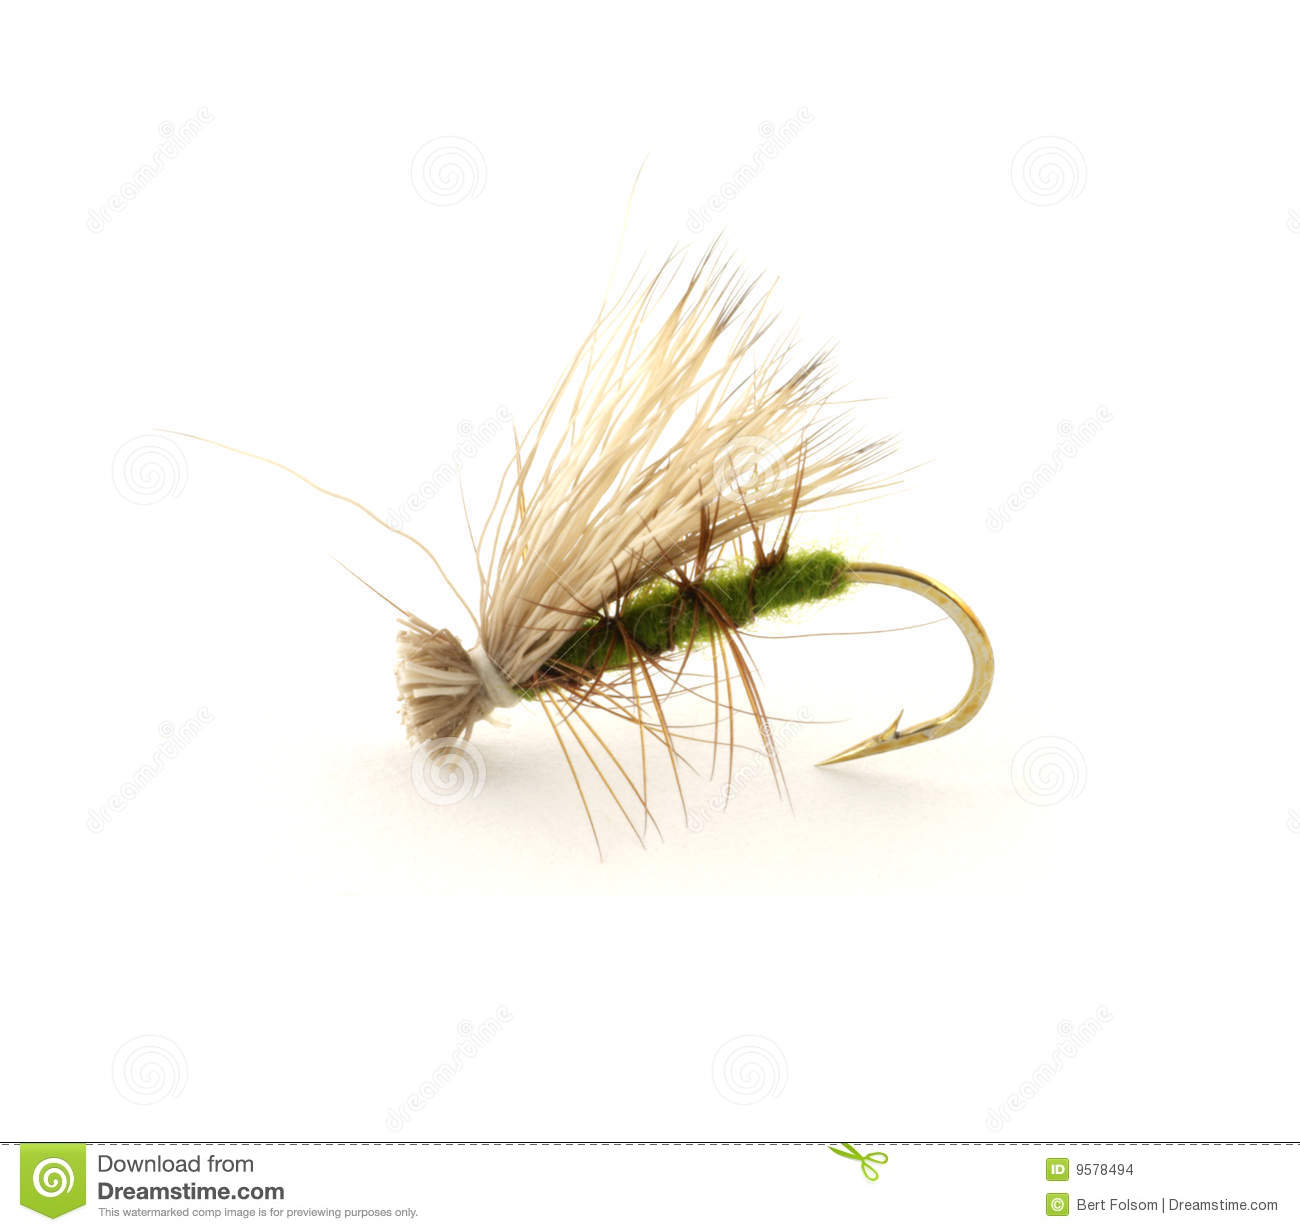 single dry fly for trout fishing against a white background.